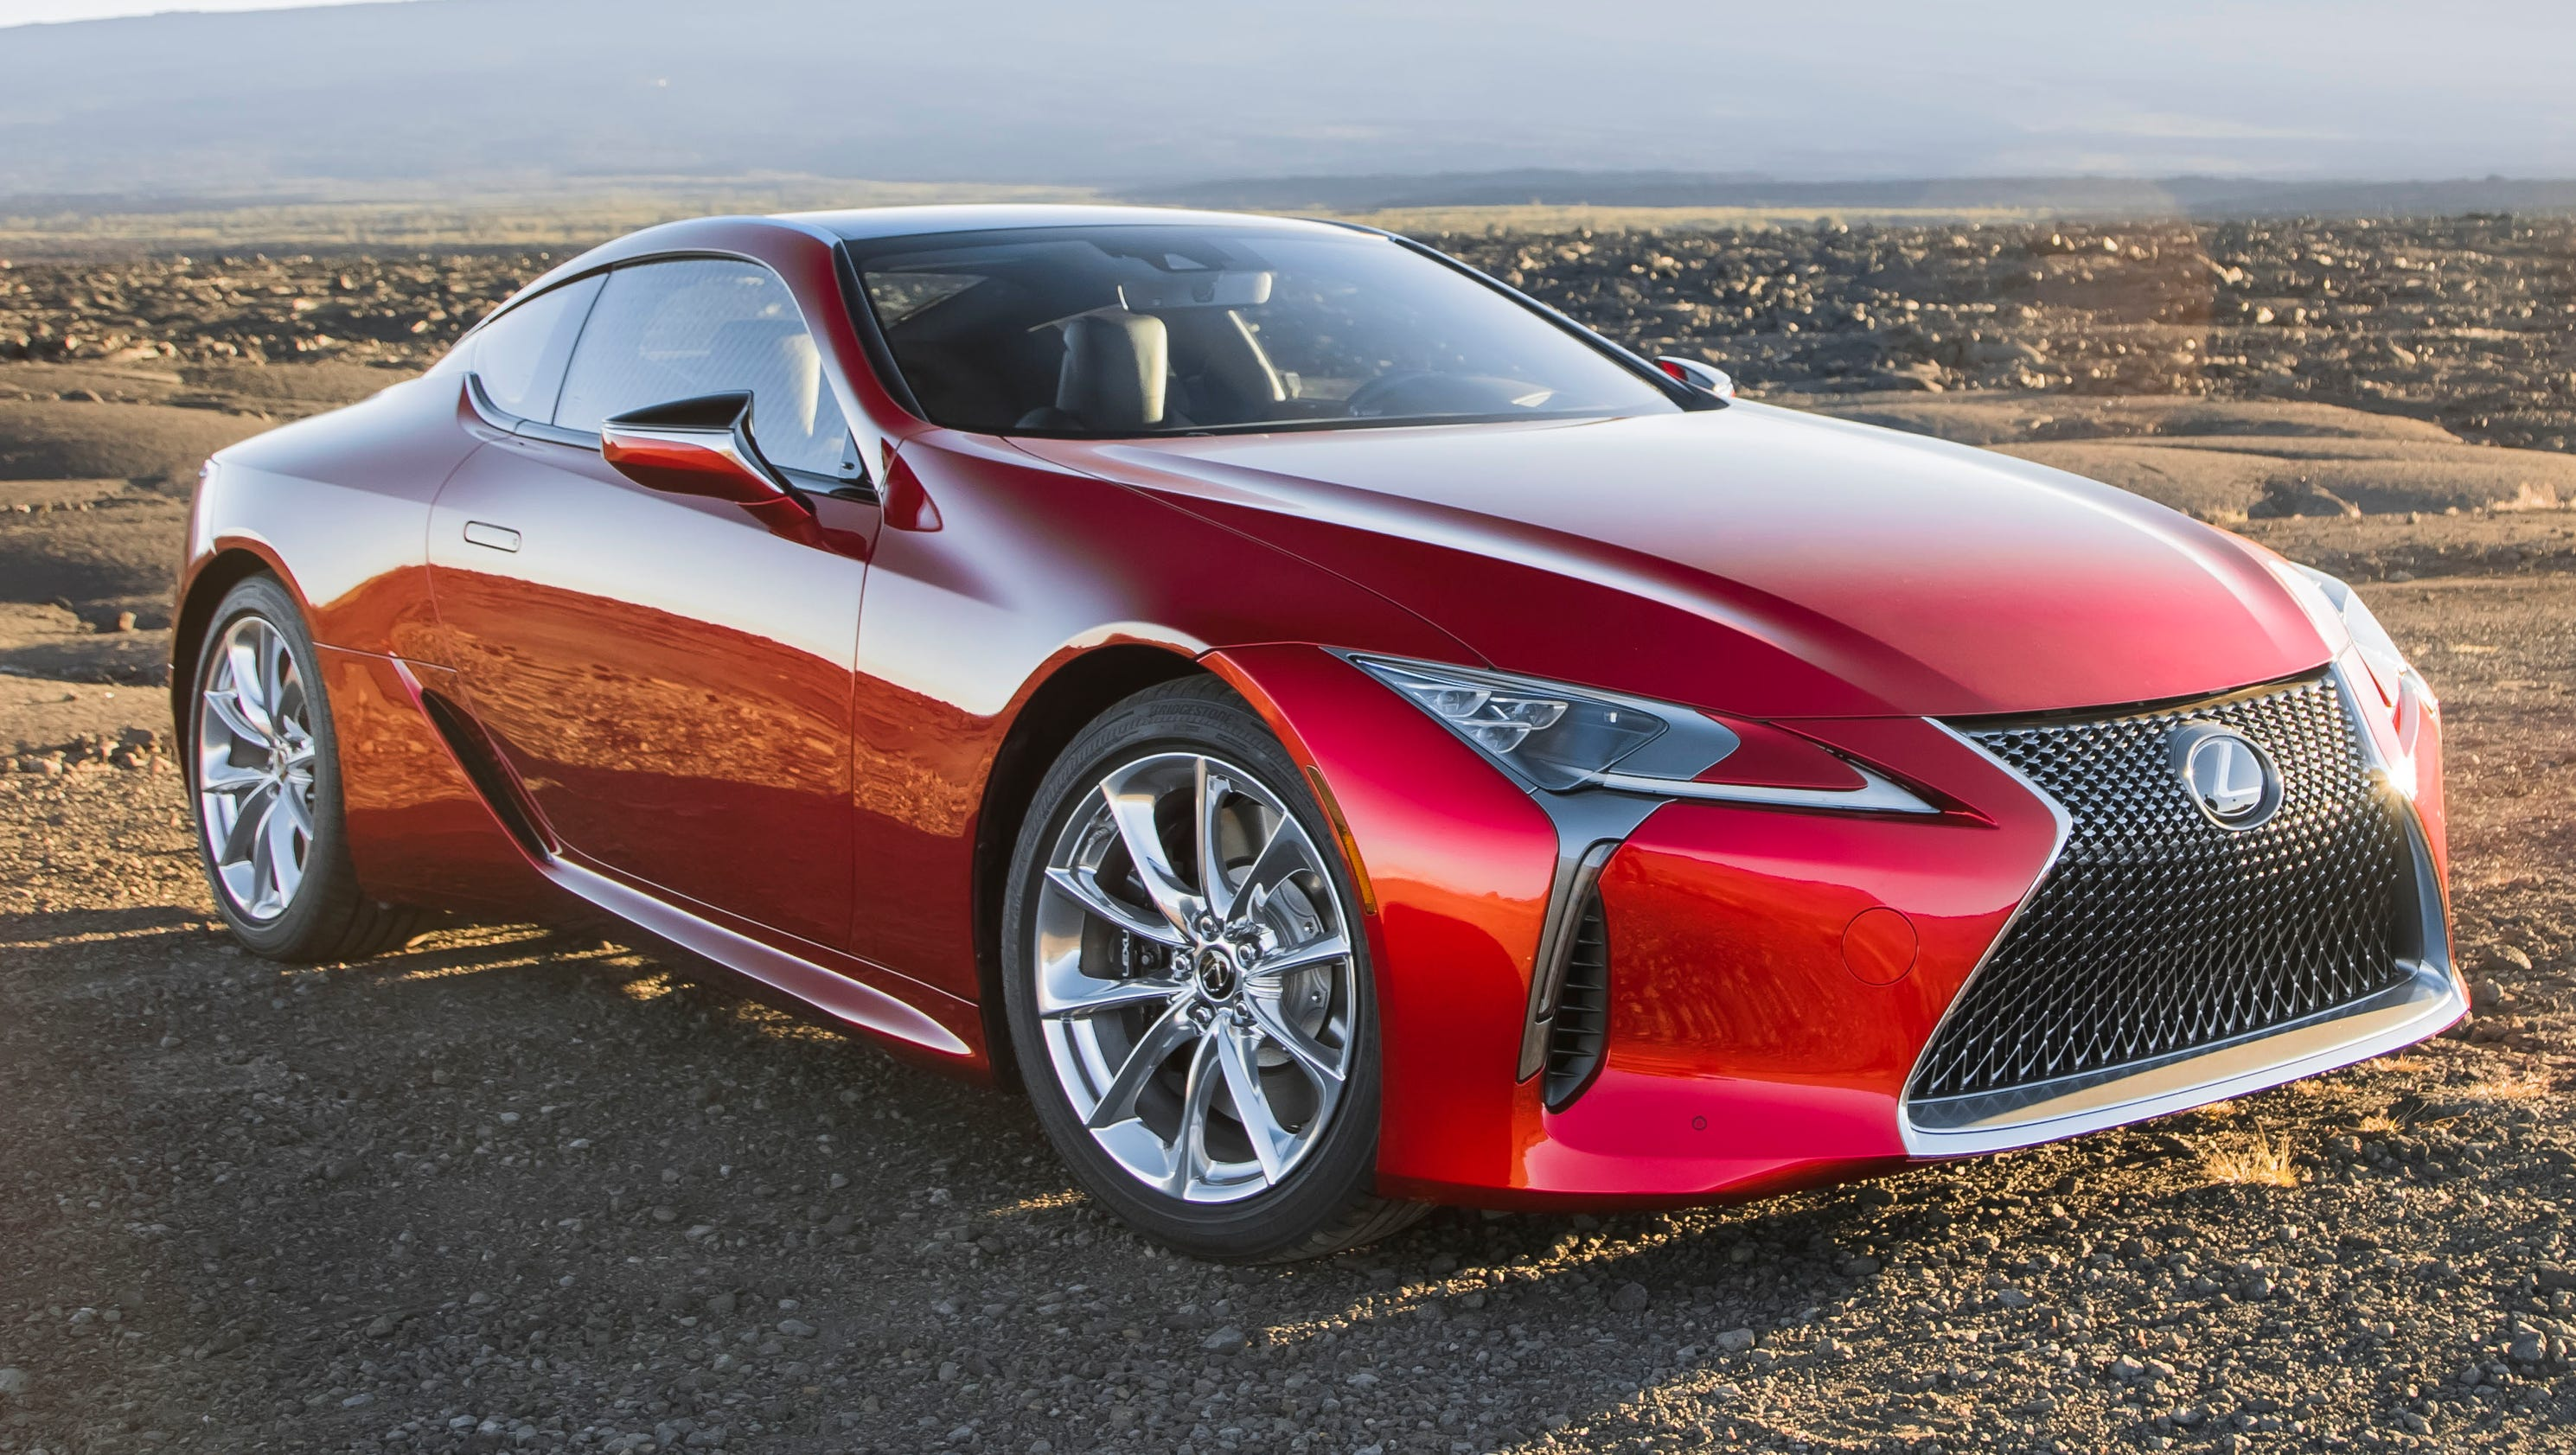 Best 500 Car Photos Spectacular: Review: Lexus LC 500 Offers Stunning Looks And More